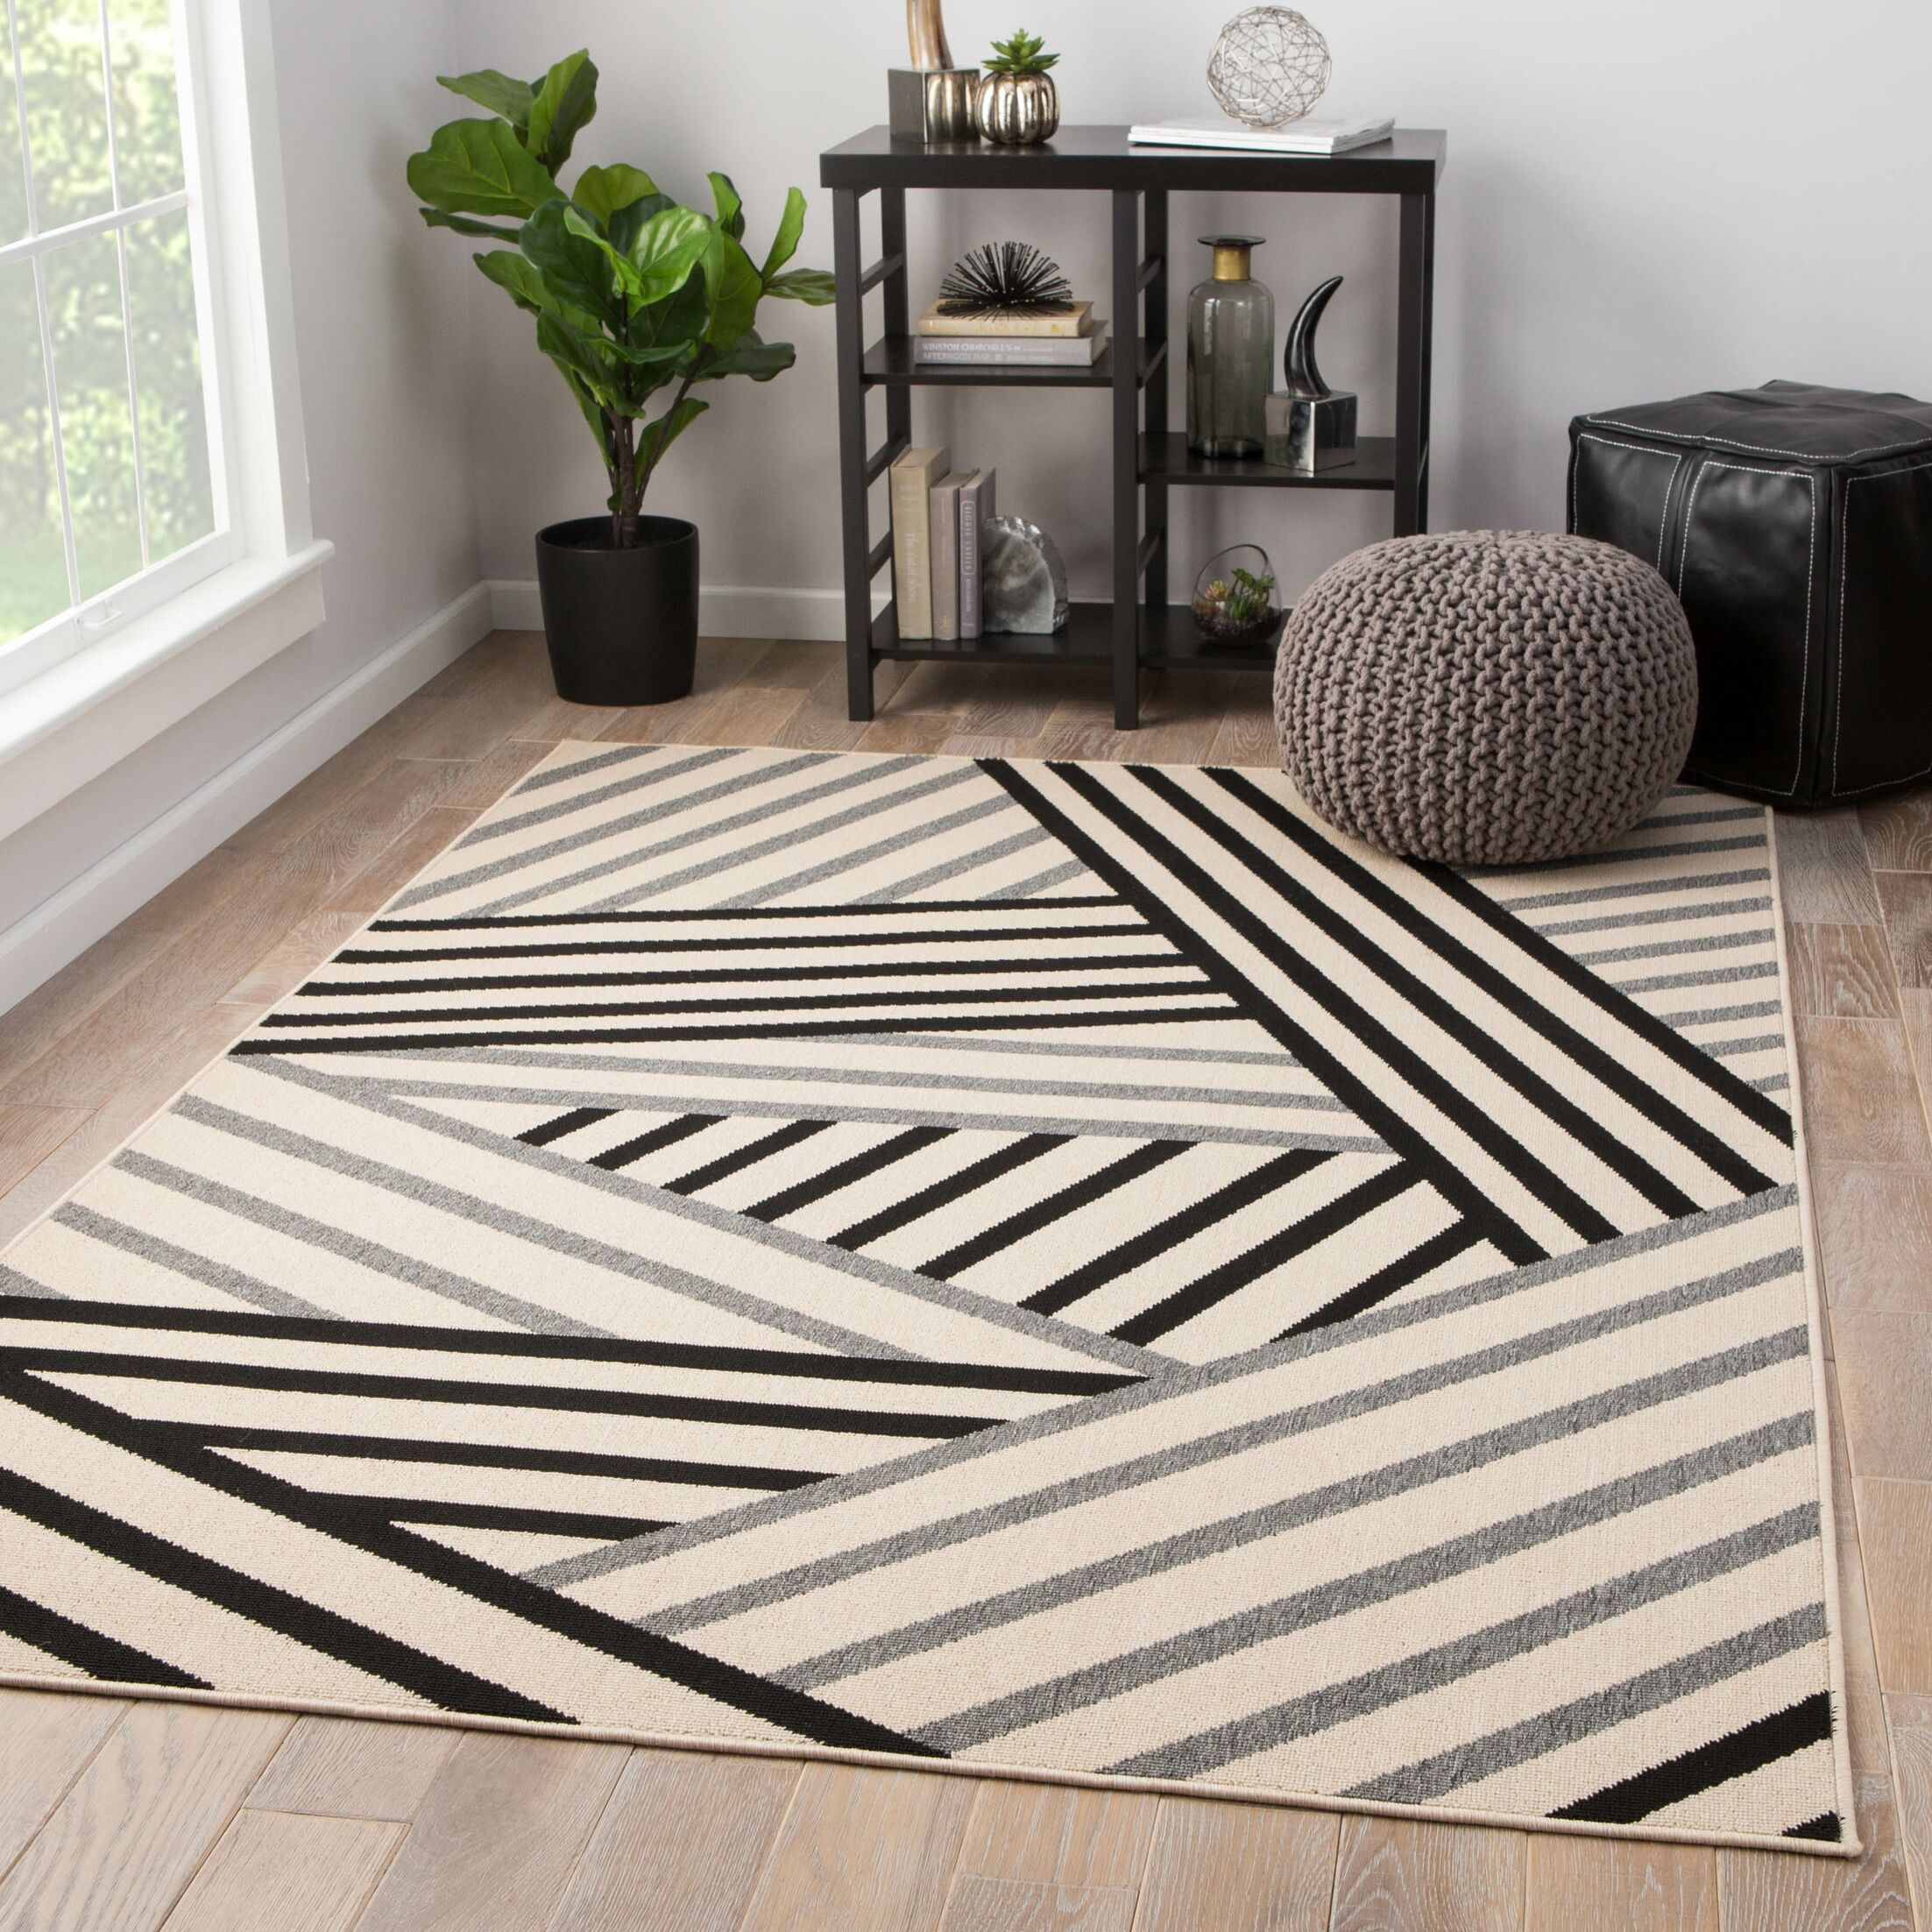 Ace Hand-Knotted Black/Gray Indoor/Outdoor Area Rug Rug Size: Rectangle 8'6